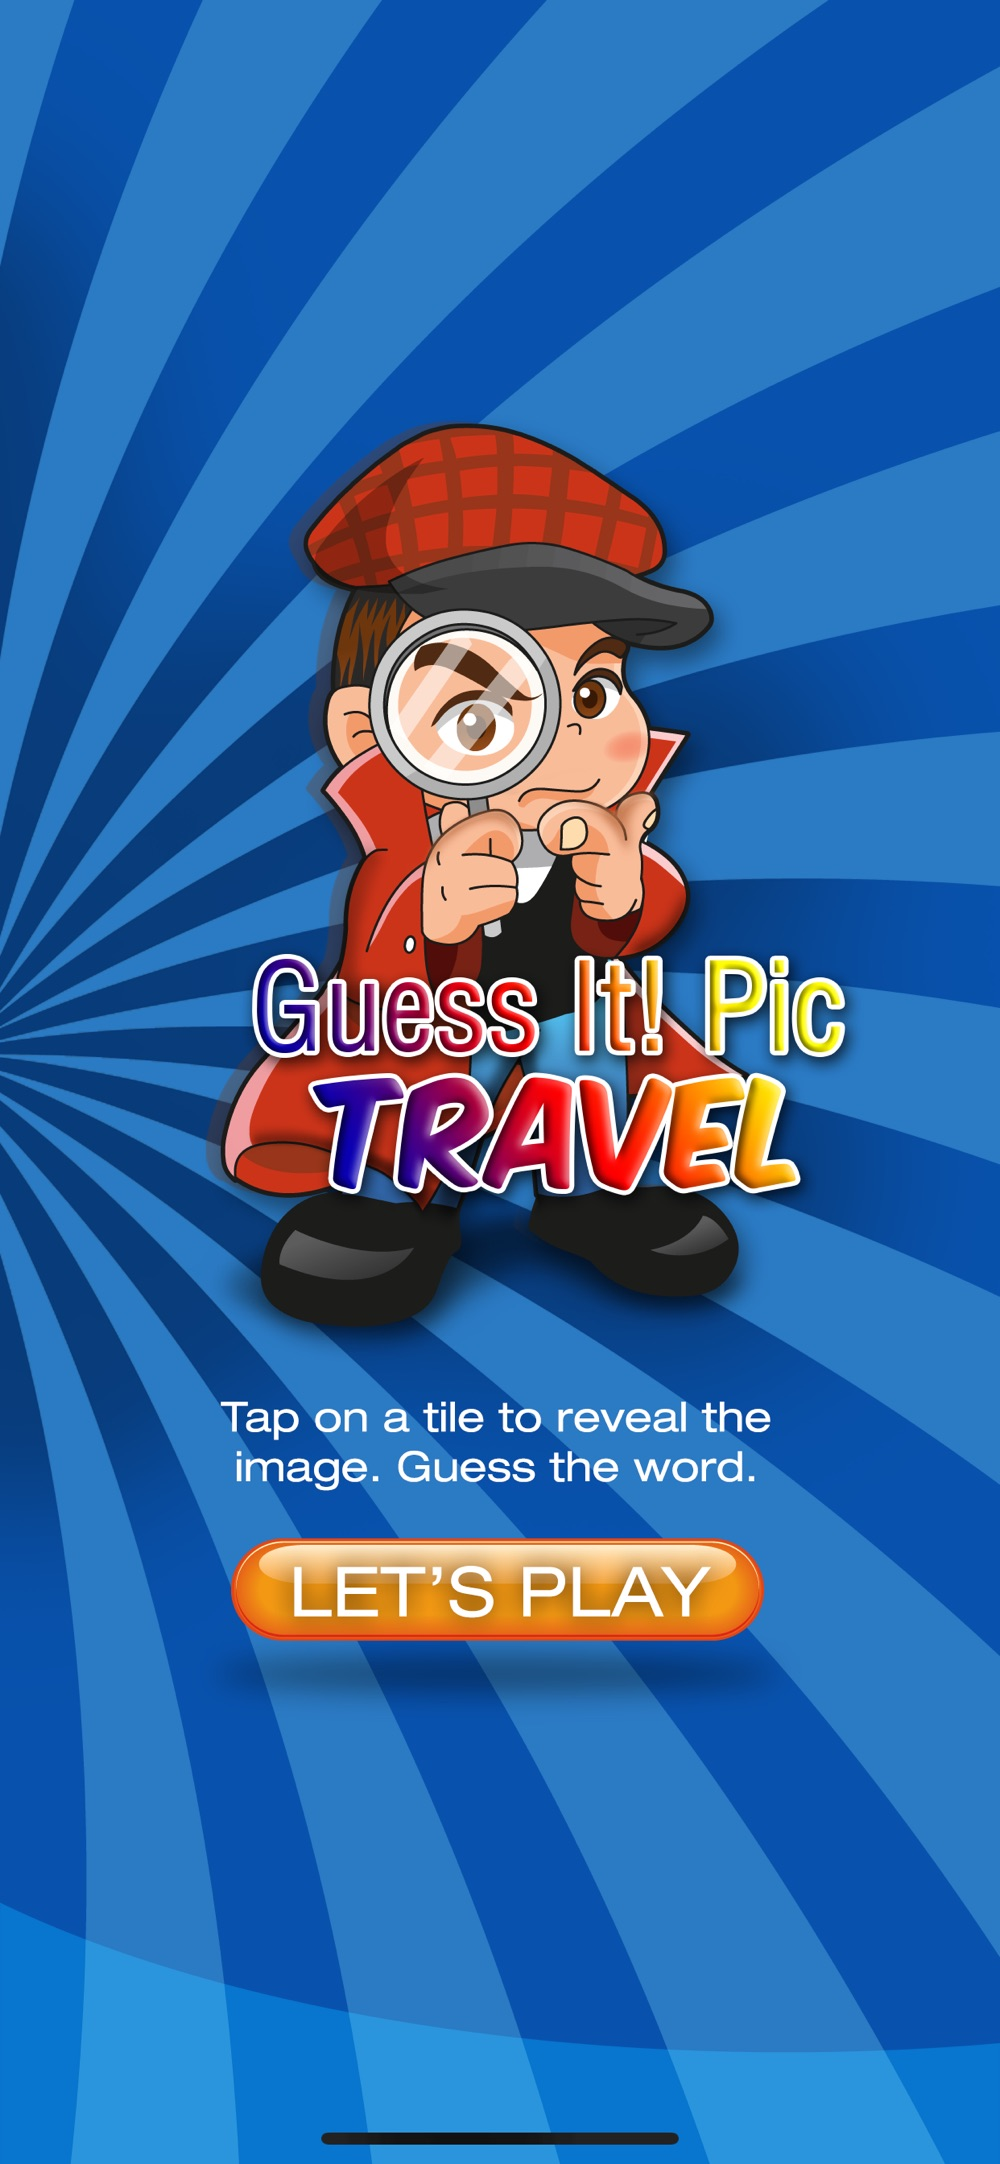 Guess It! Pic Travel Word Game Cheat Codes